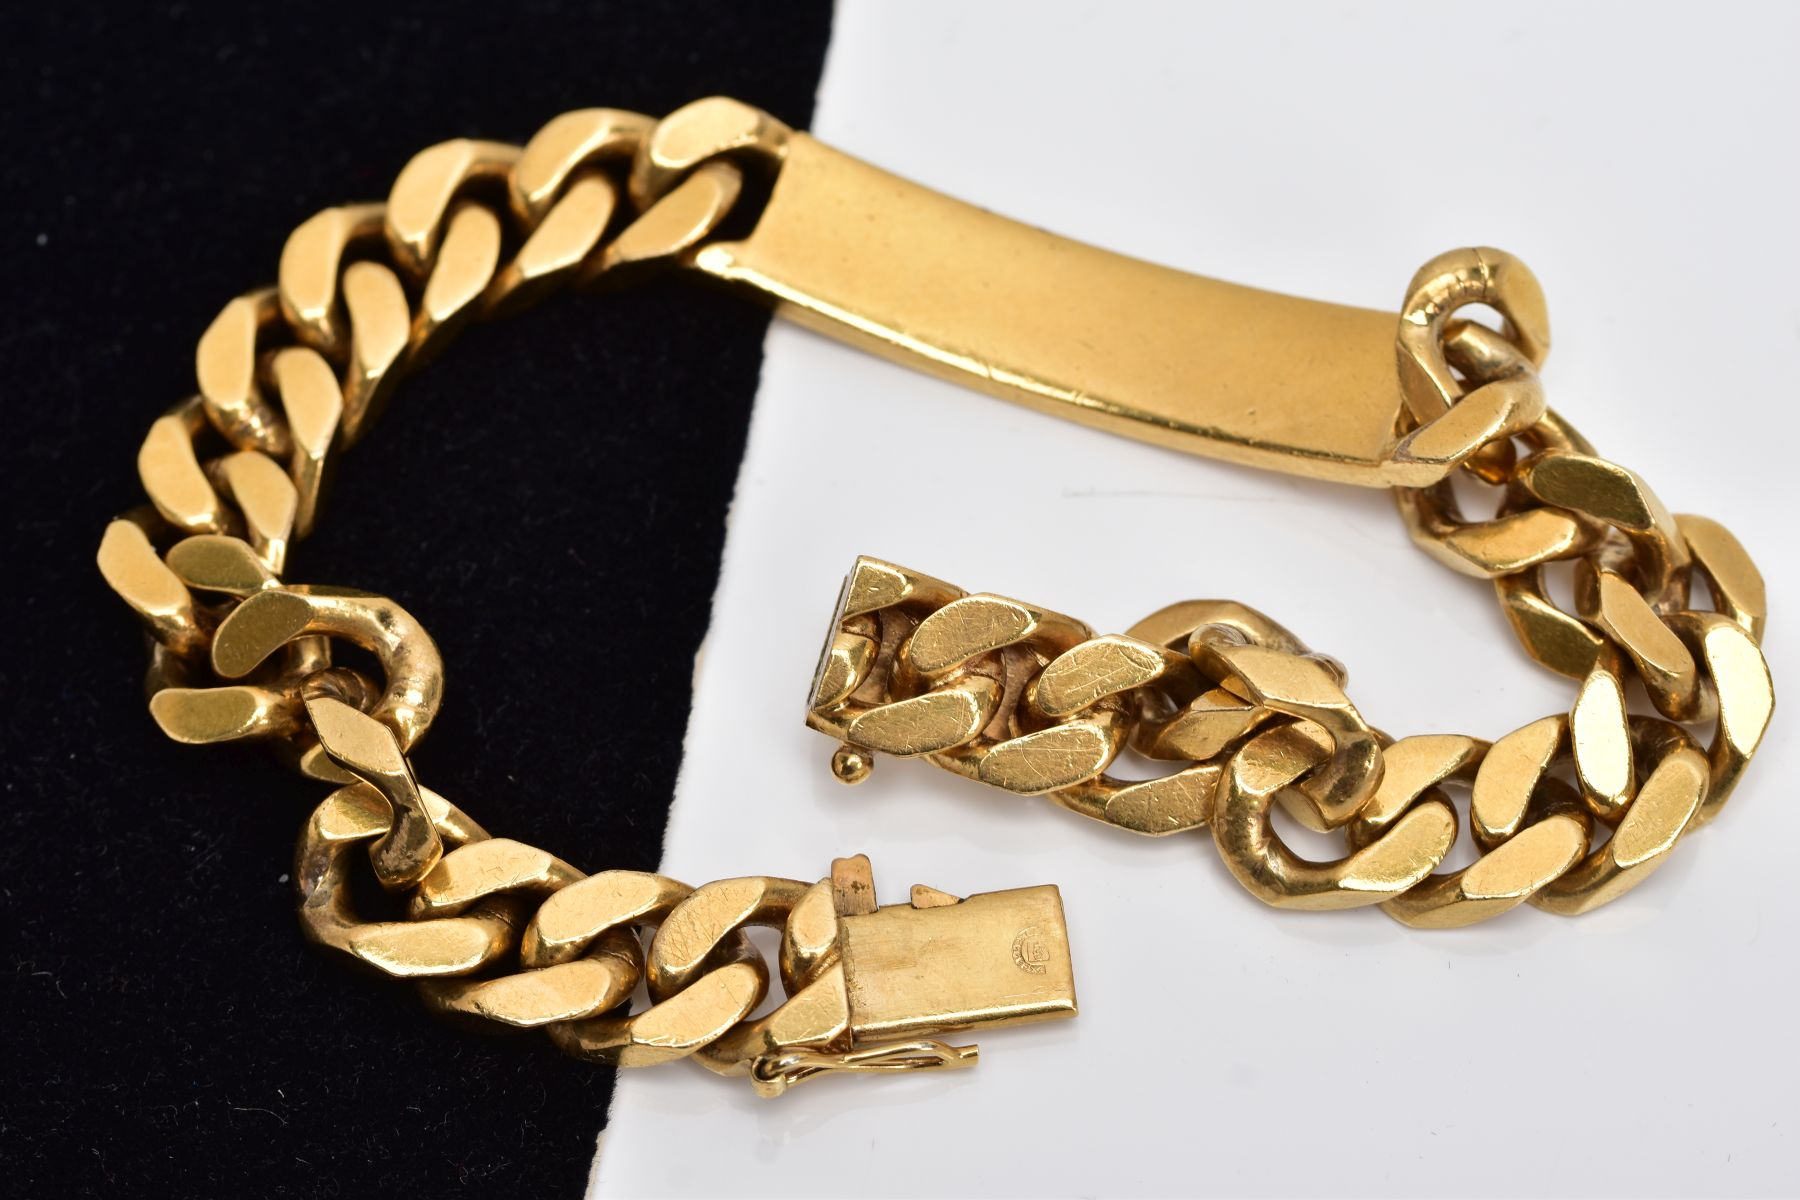 A LATE 20TH CENTURY GENTS HEAVY GAUGE CURB LINK IDENTITY BRACELET, measuring approximately 230mm - Image 3 of 3